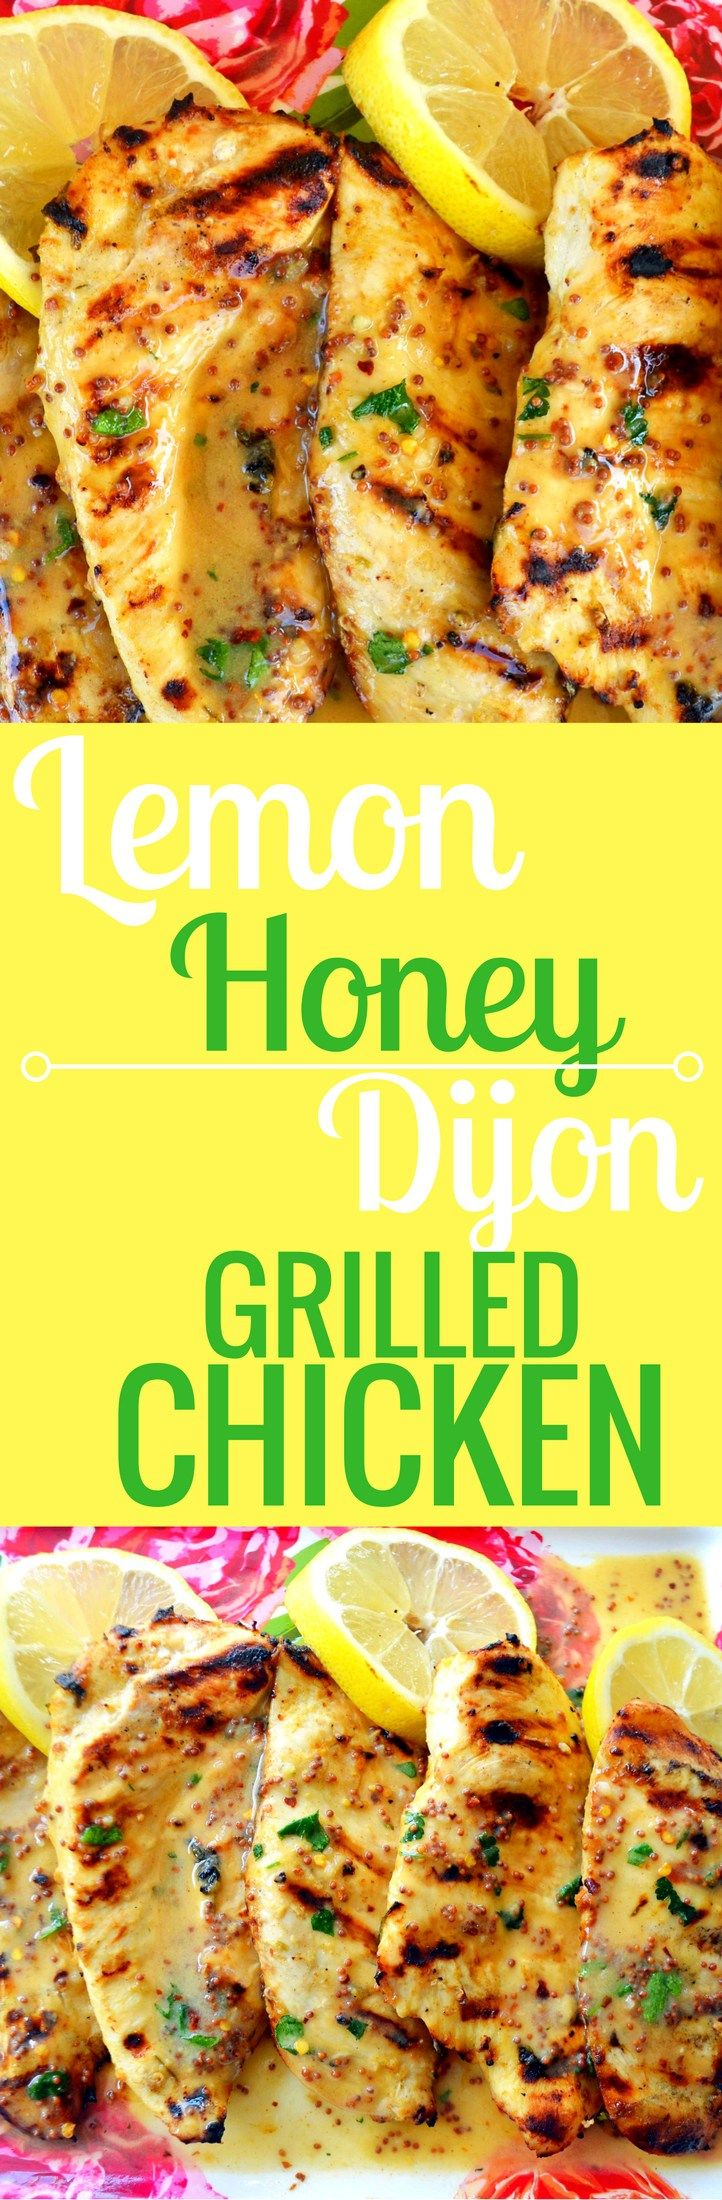 Lemon Honey Dijon Grilled Chicken made with fresh lemon juice, dijon mustard, olive oil, honey, and herbs and spices. www.modernhoney.com